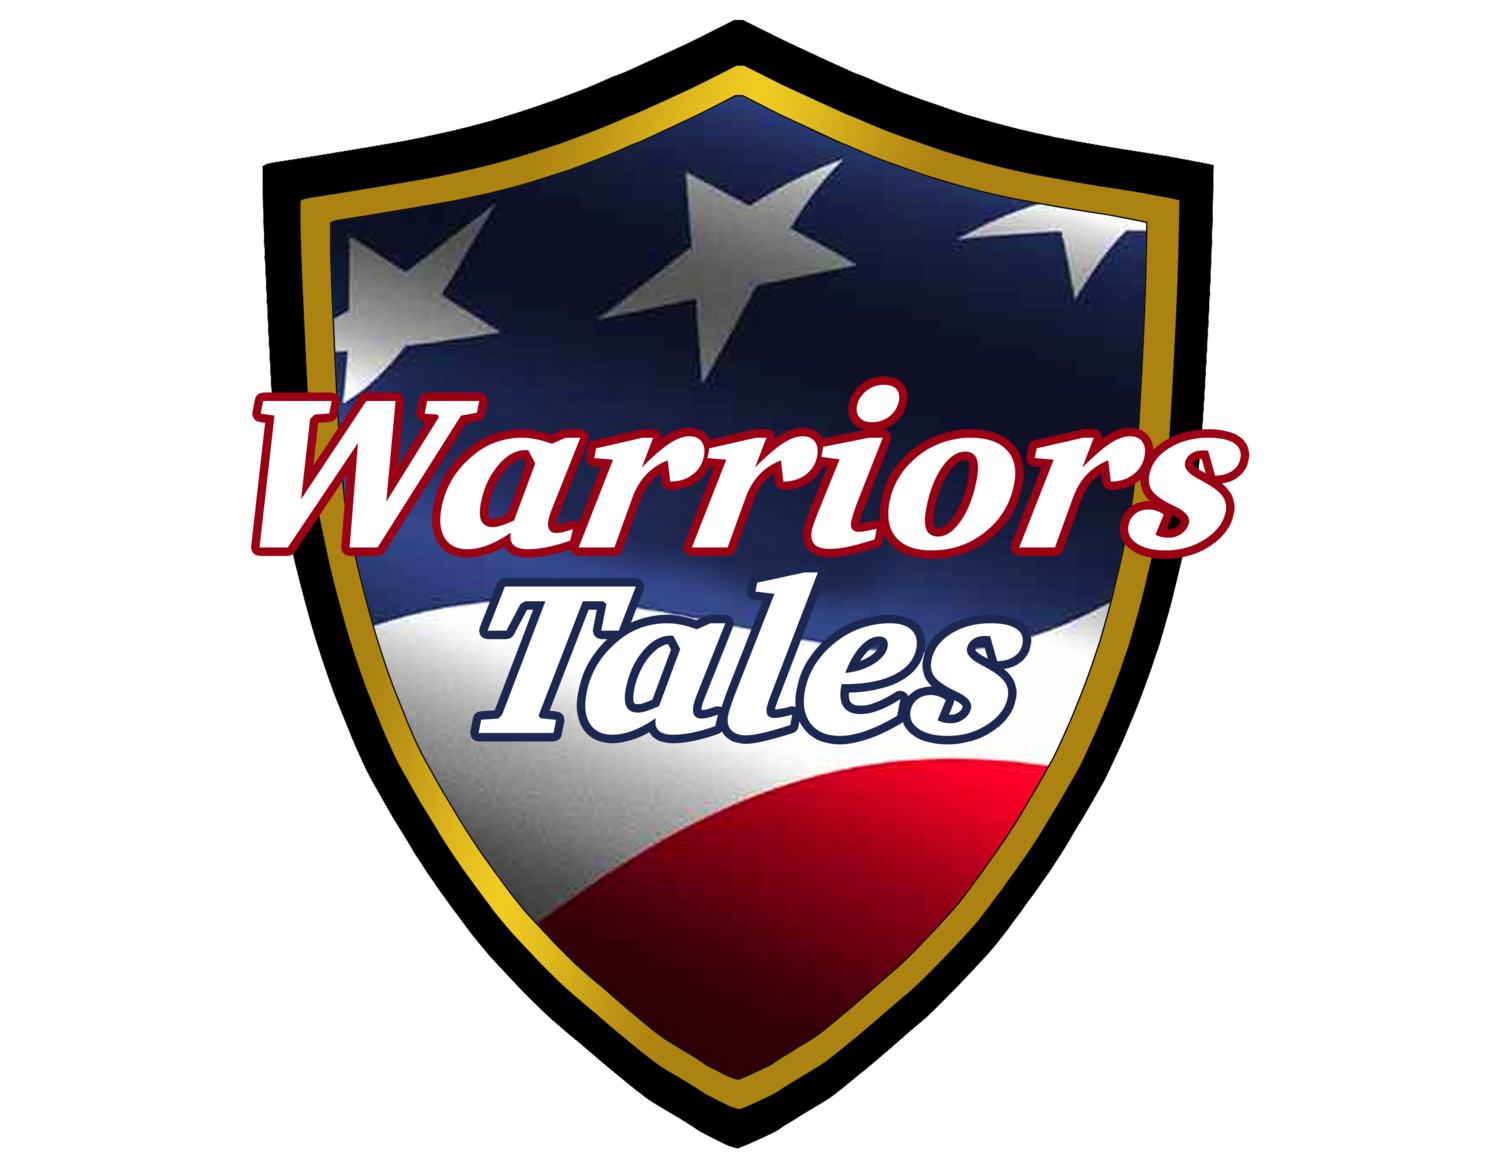 Warriors' Tales